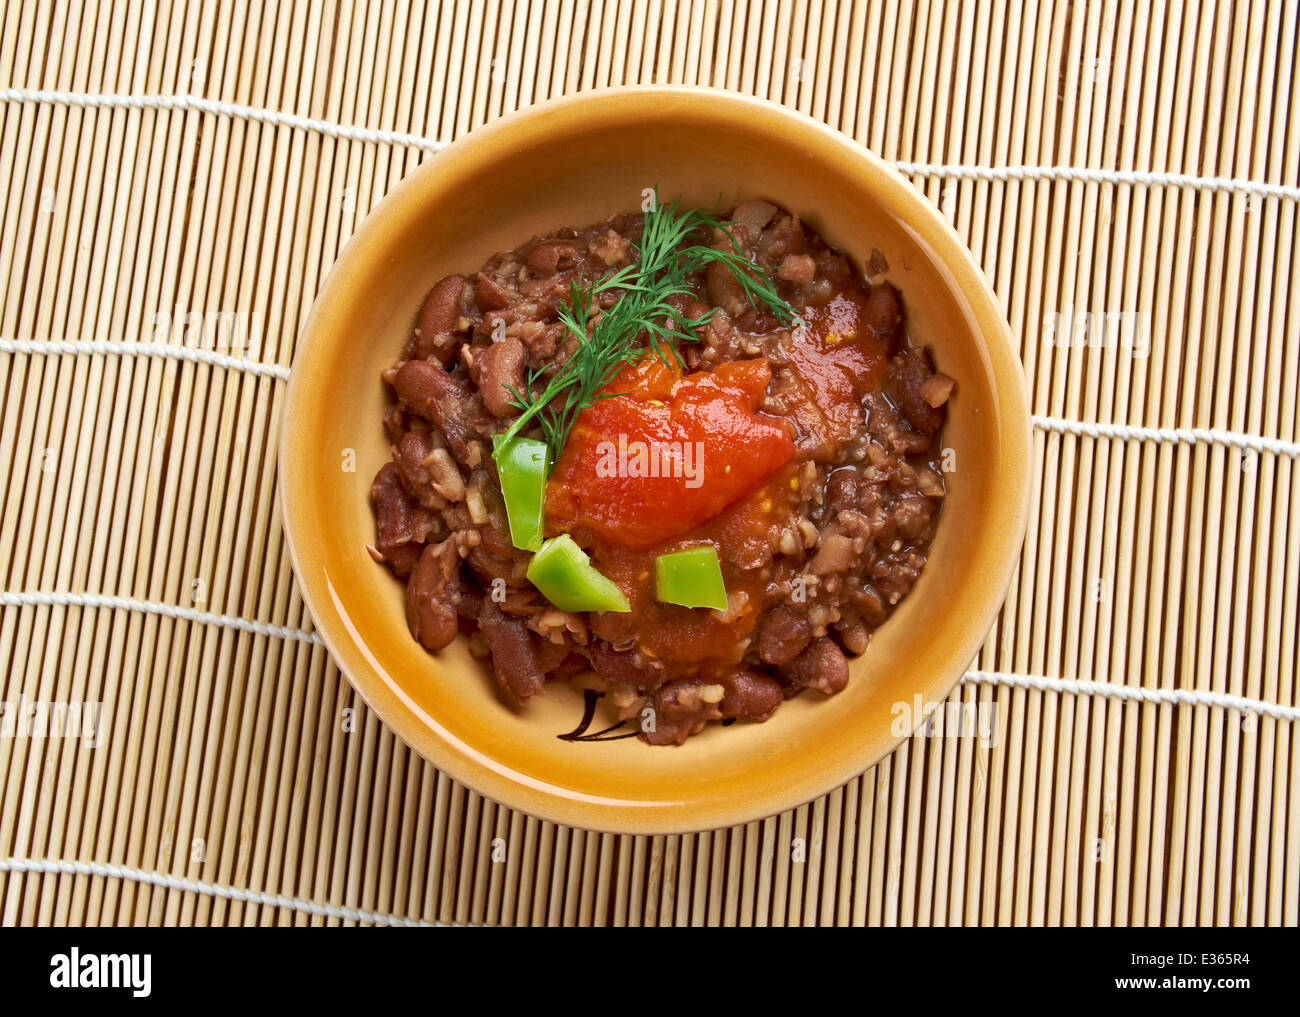 Ful medames - Egyptian,Sudanese dish of cooked and mashed fava beans served with vegetable oil, - Stock Image